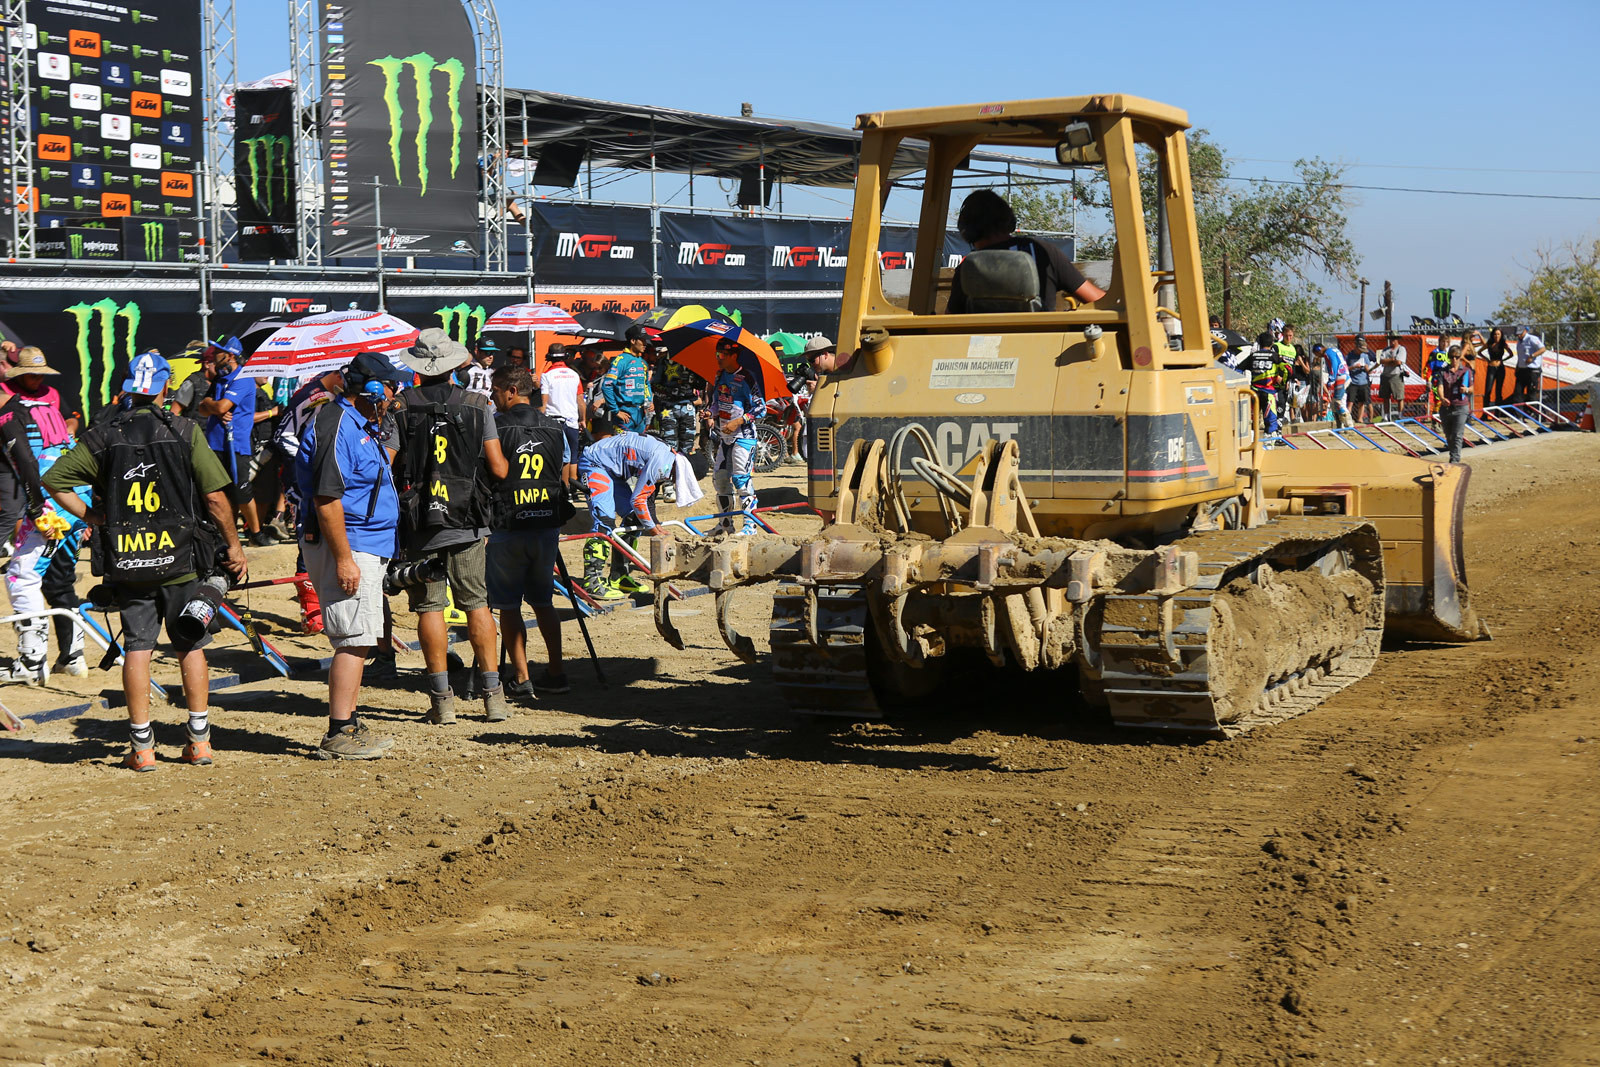 Track work - Photo Blast: MXGP of the USA - Motocross Pictures - Vital MX